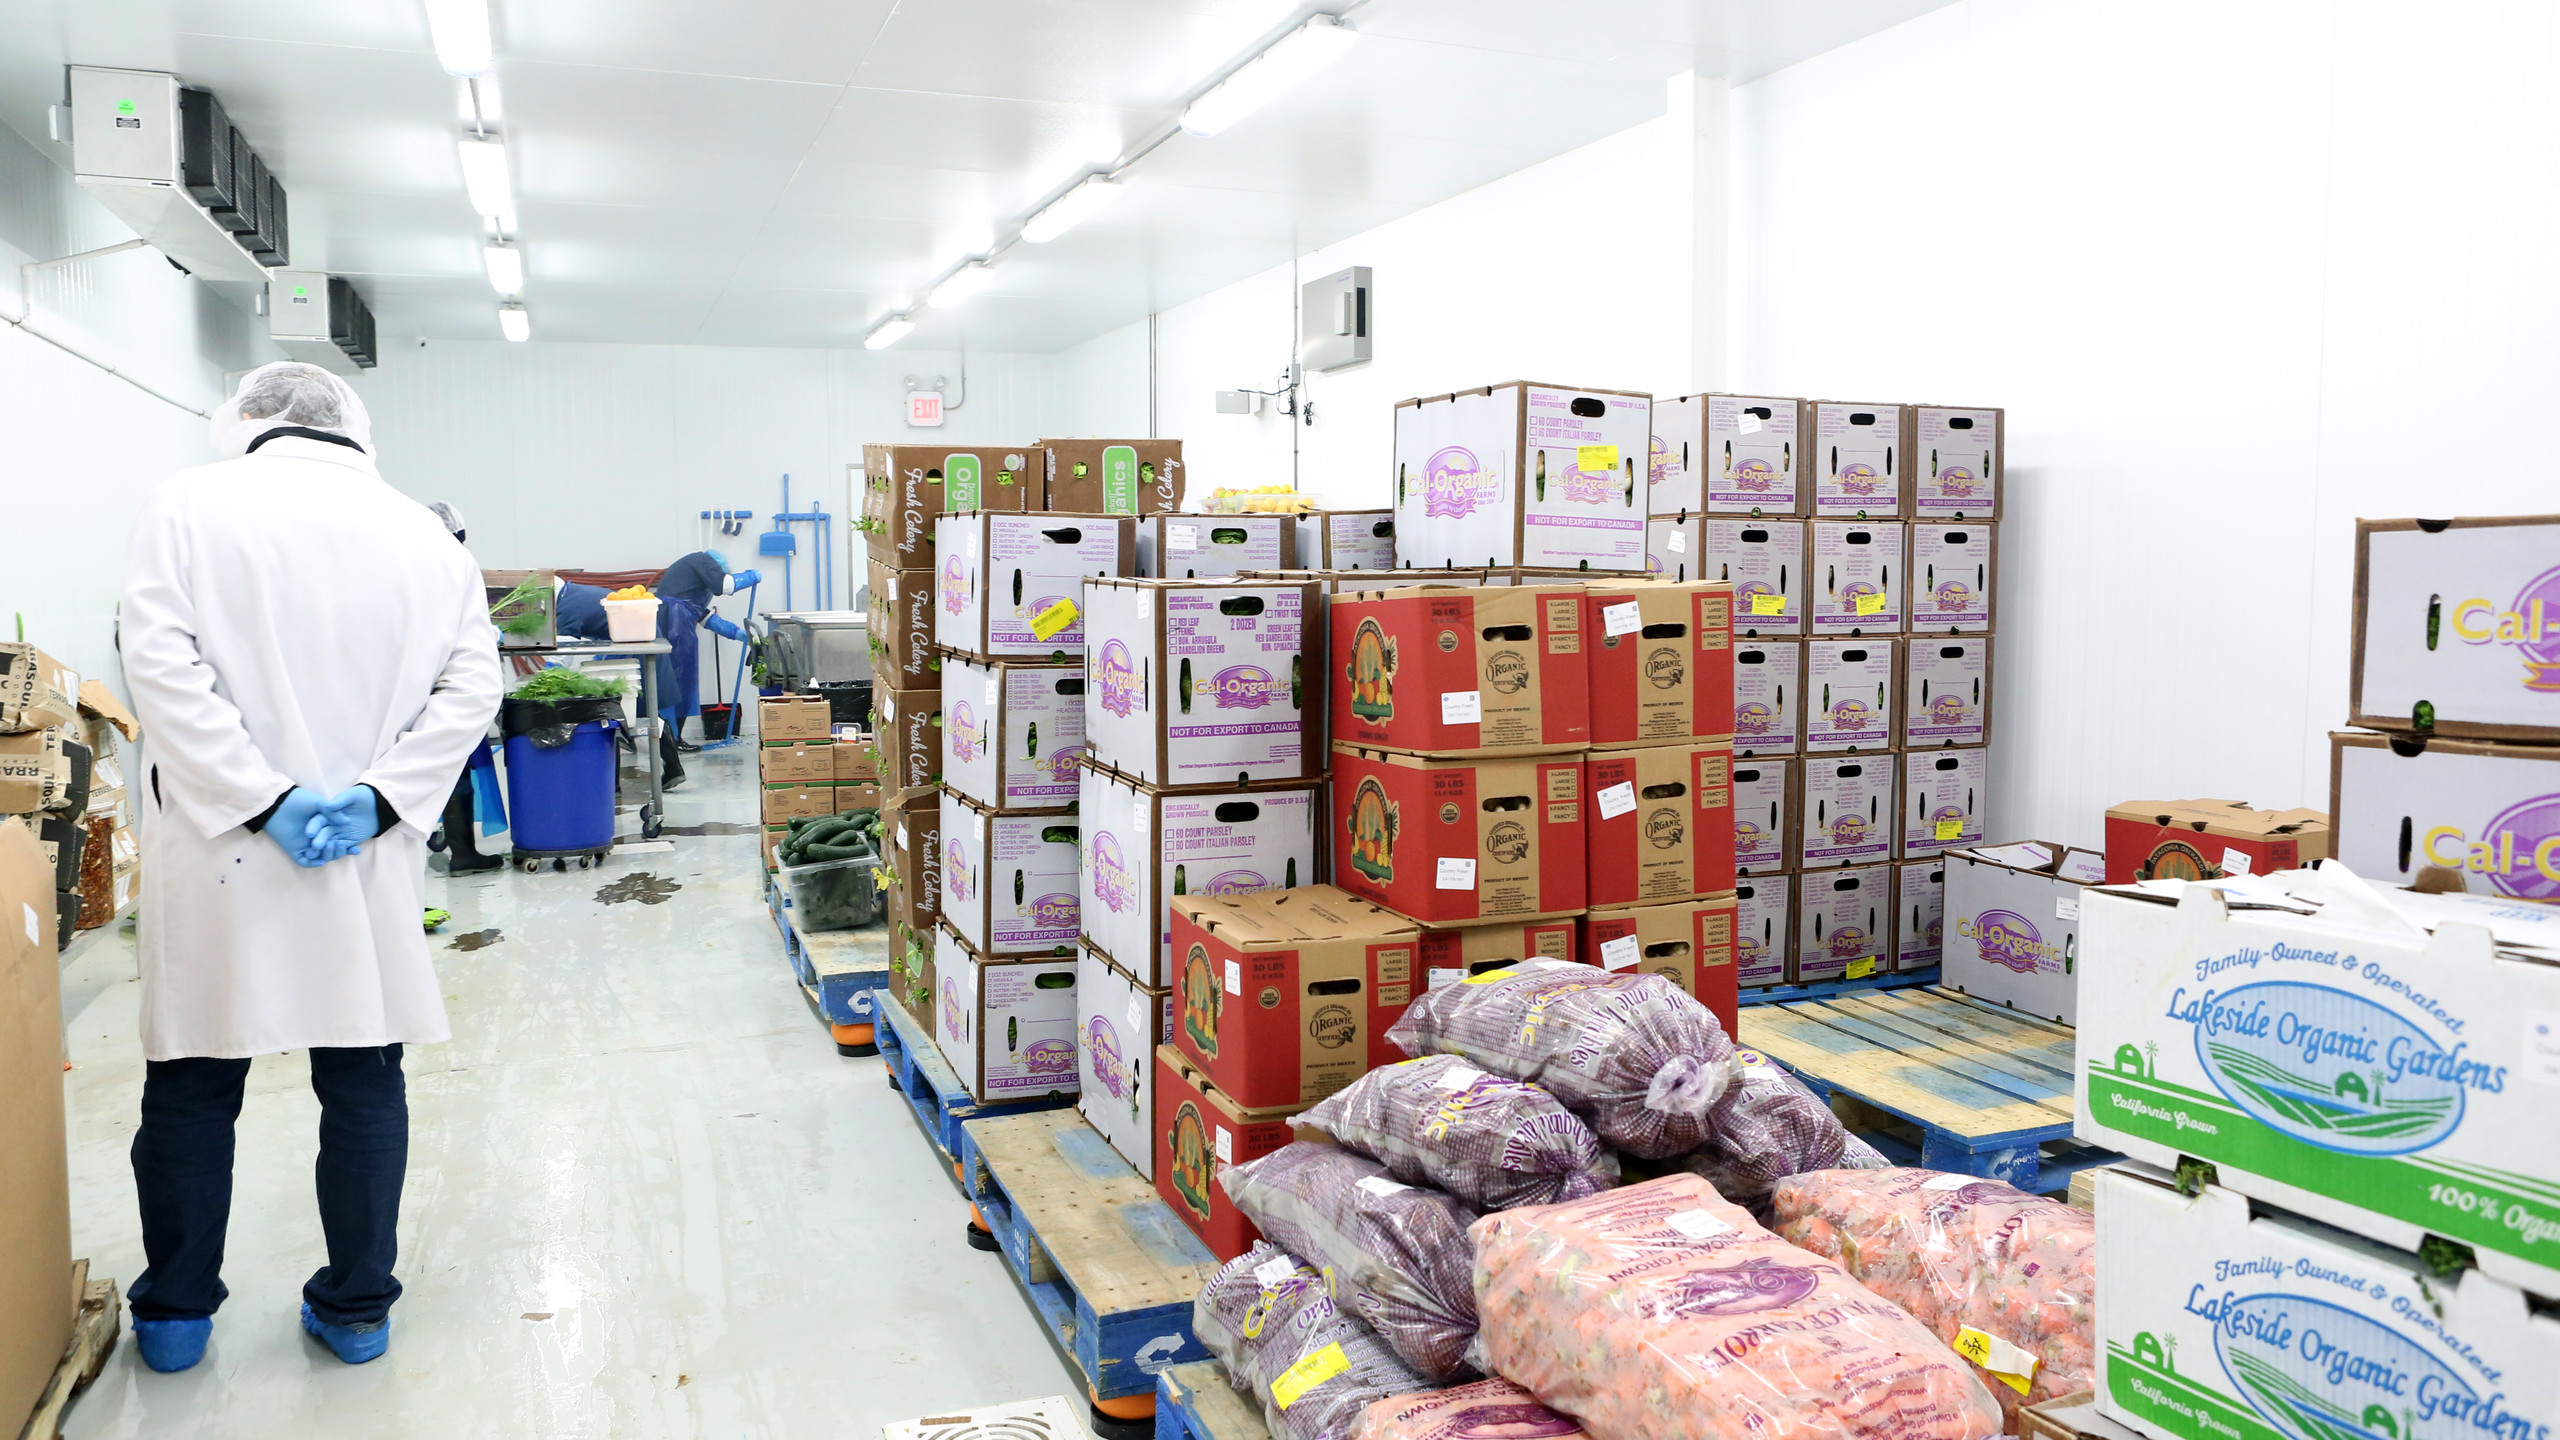 All produce is transported in refrigerated trucks from farm to kitchen